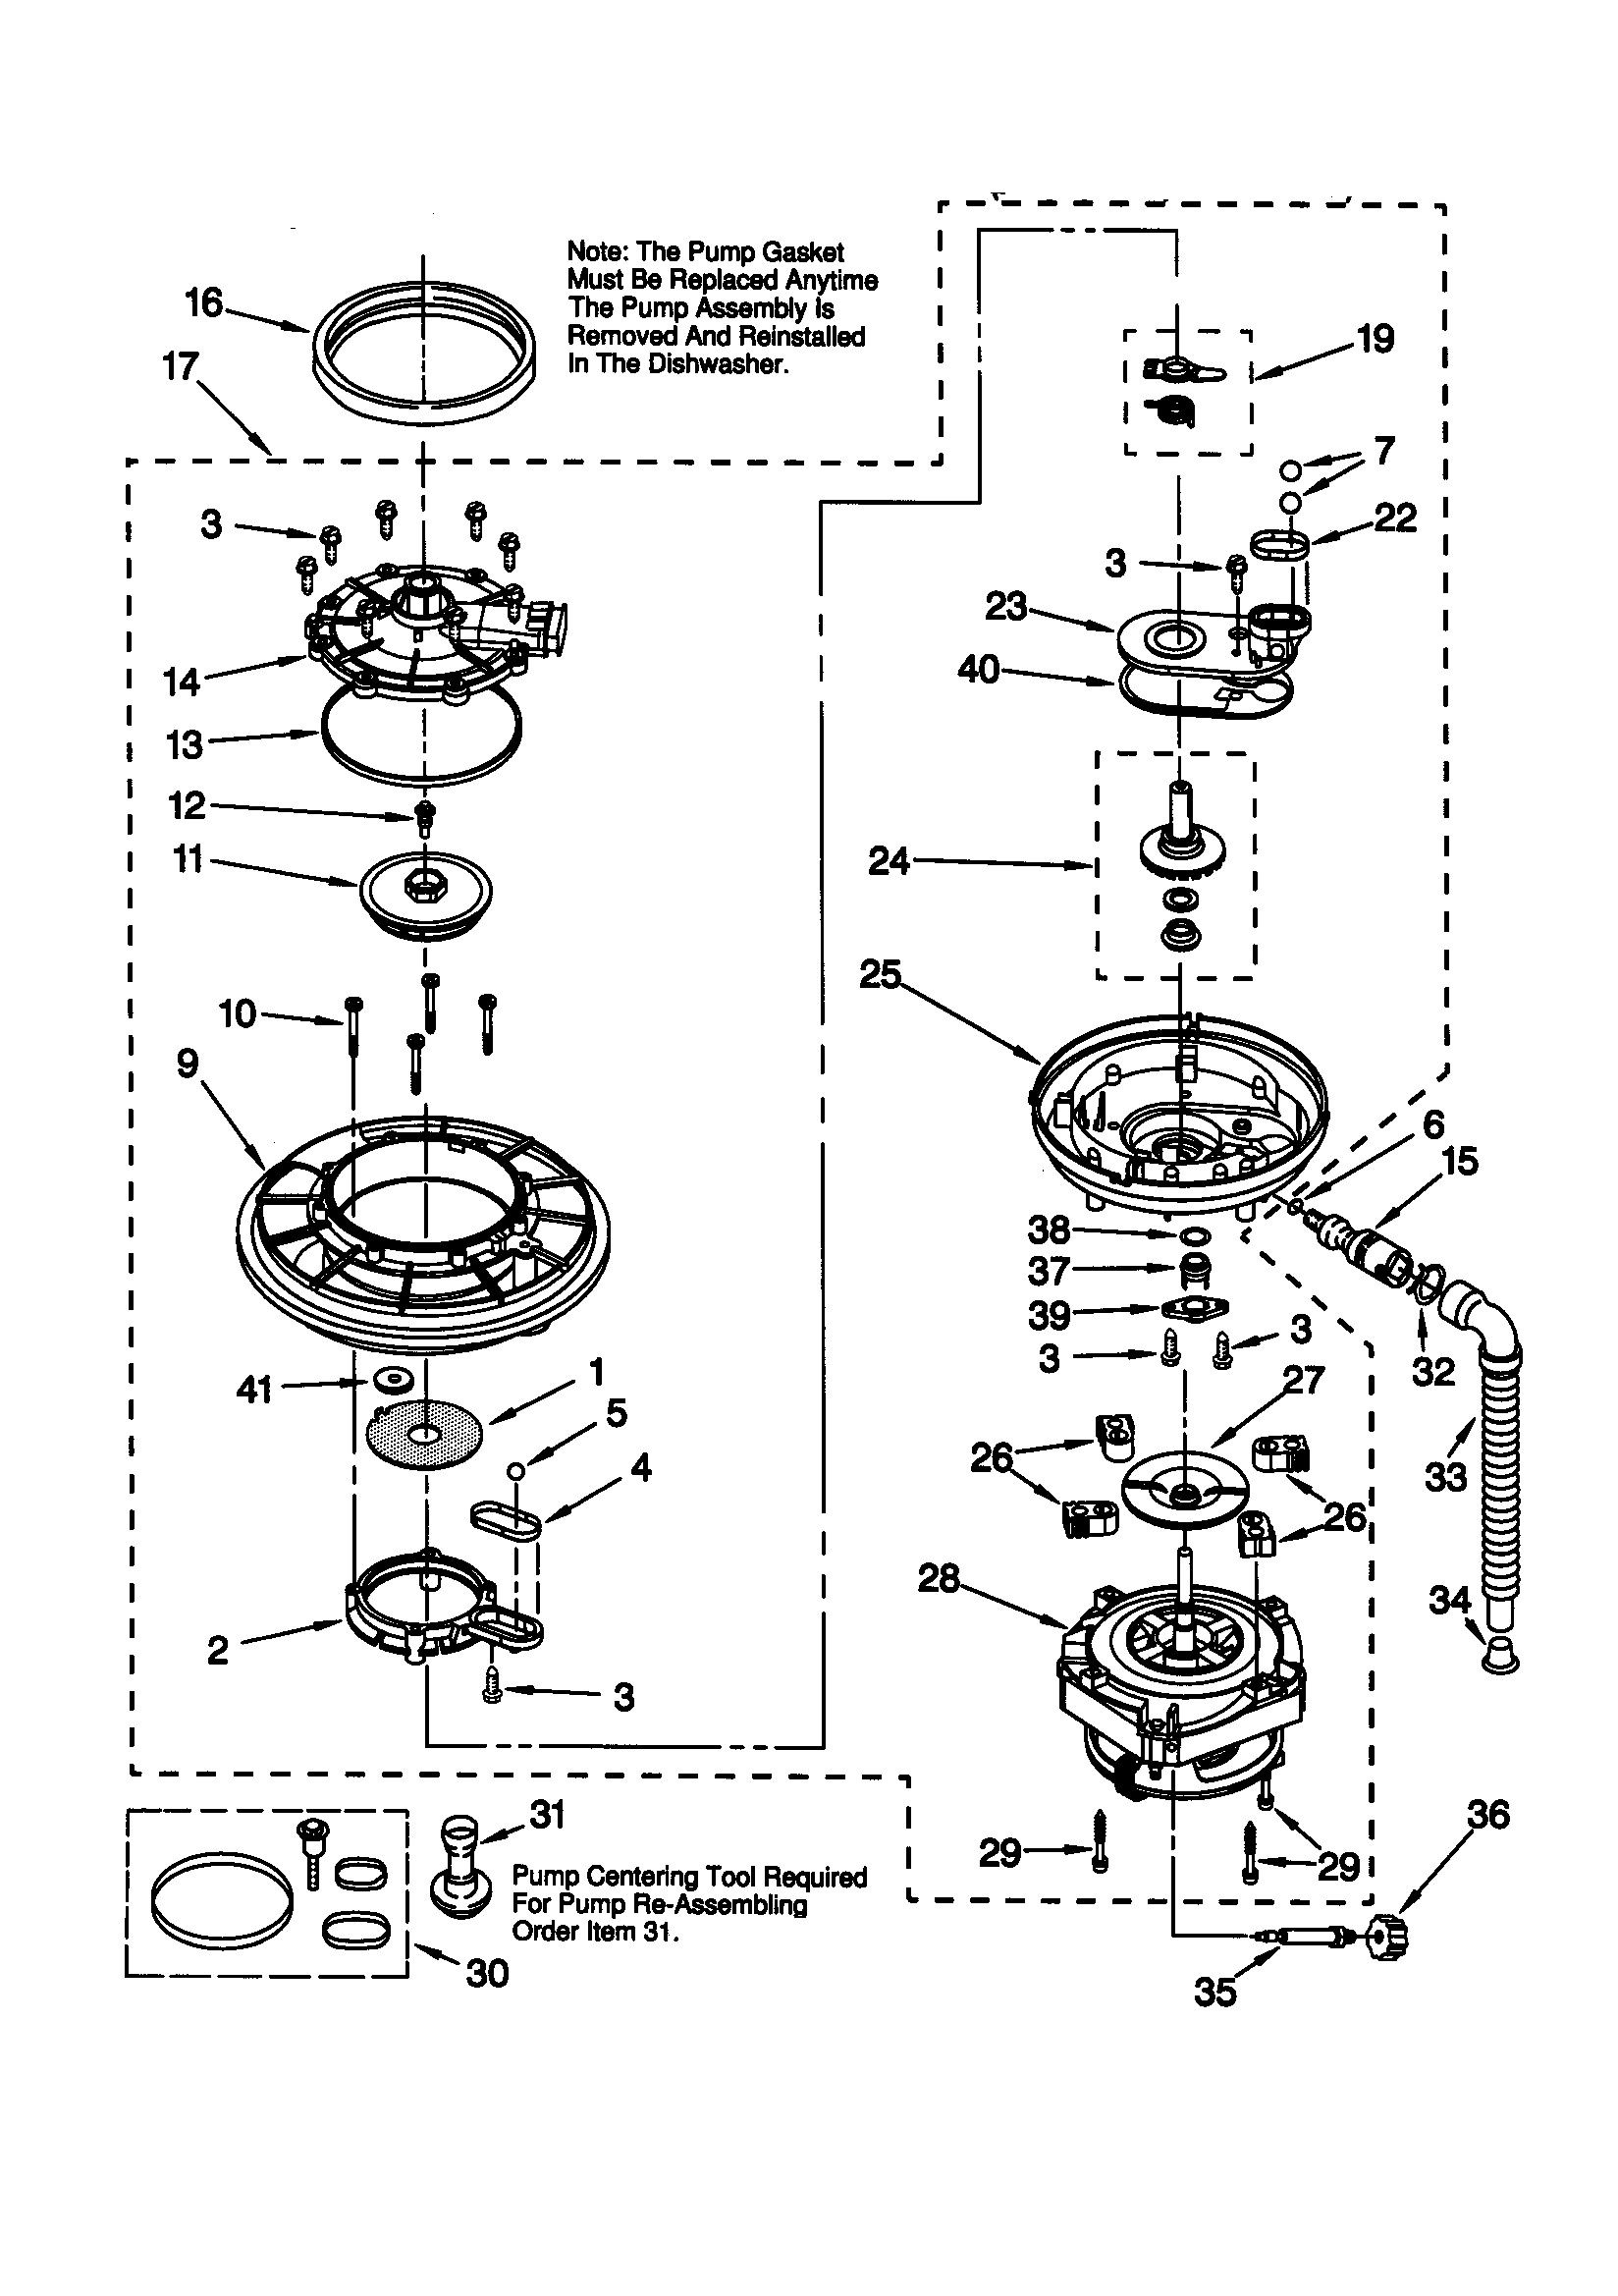 66515982990 Dishwasher Pump and motor Parts diagram